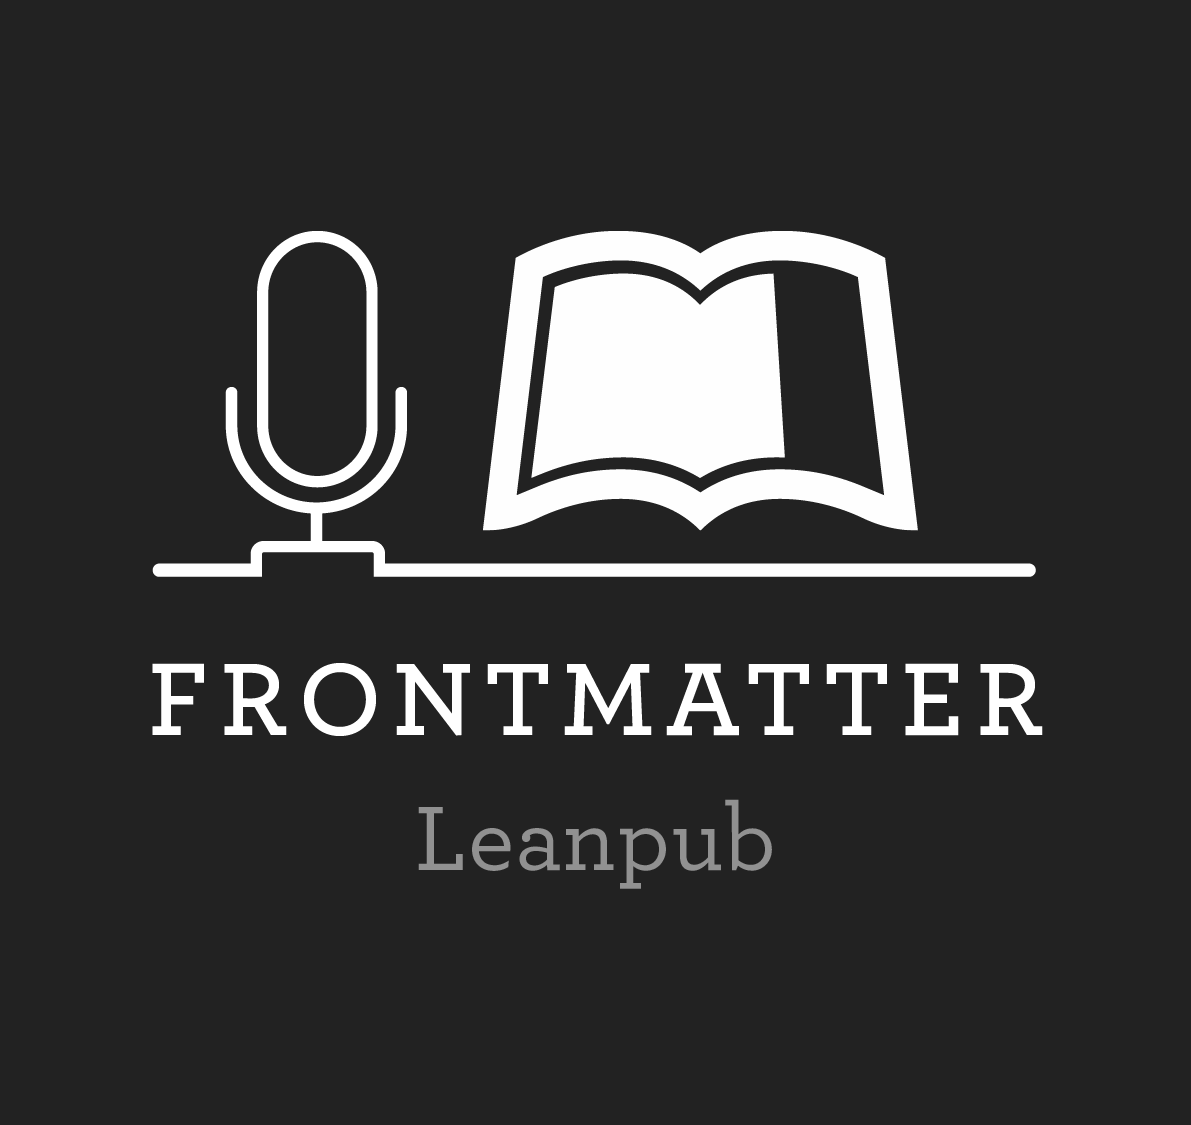 Frontmatter: The Leanpub Author Stories Podcast